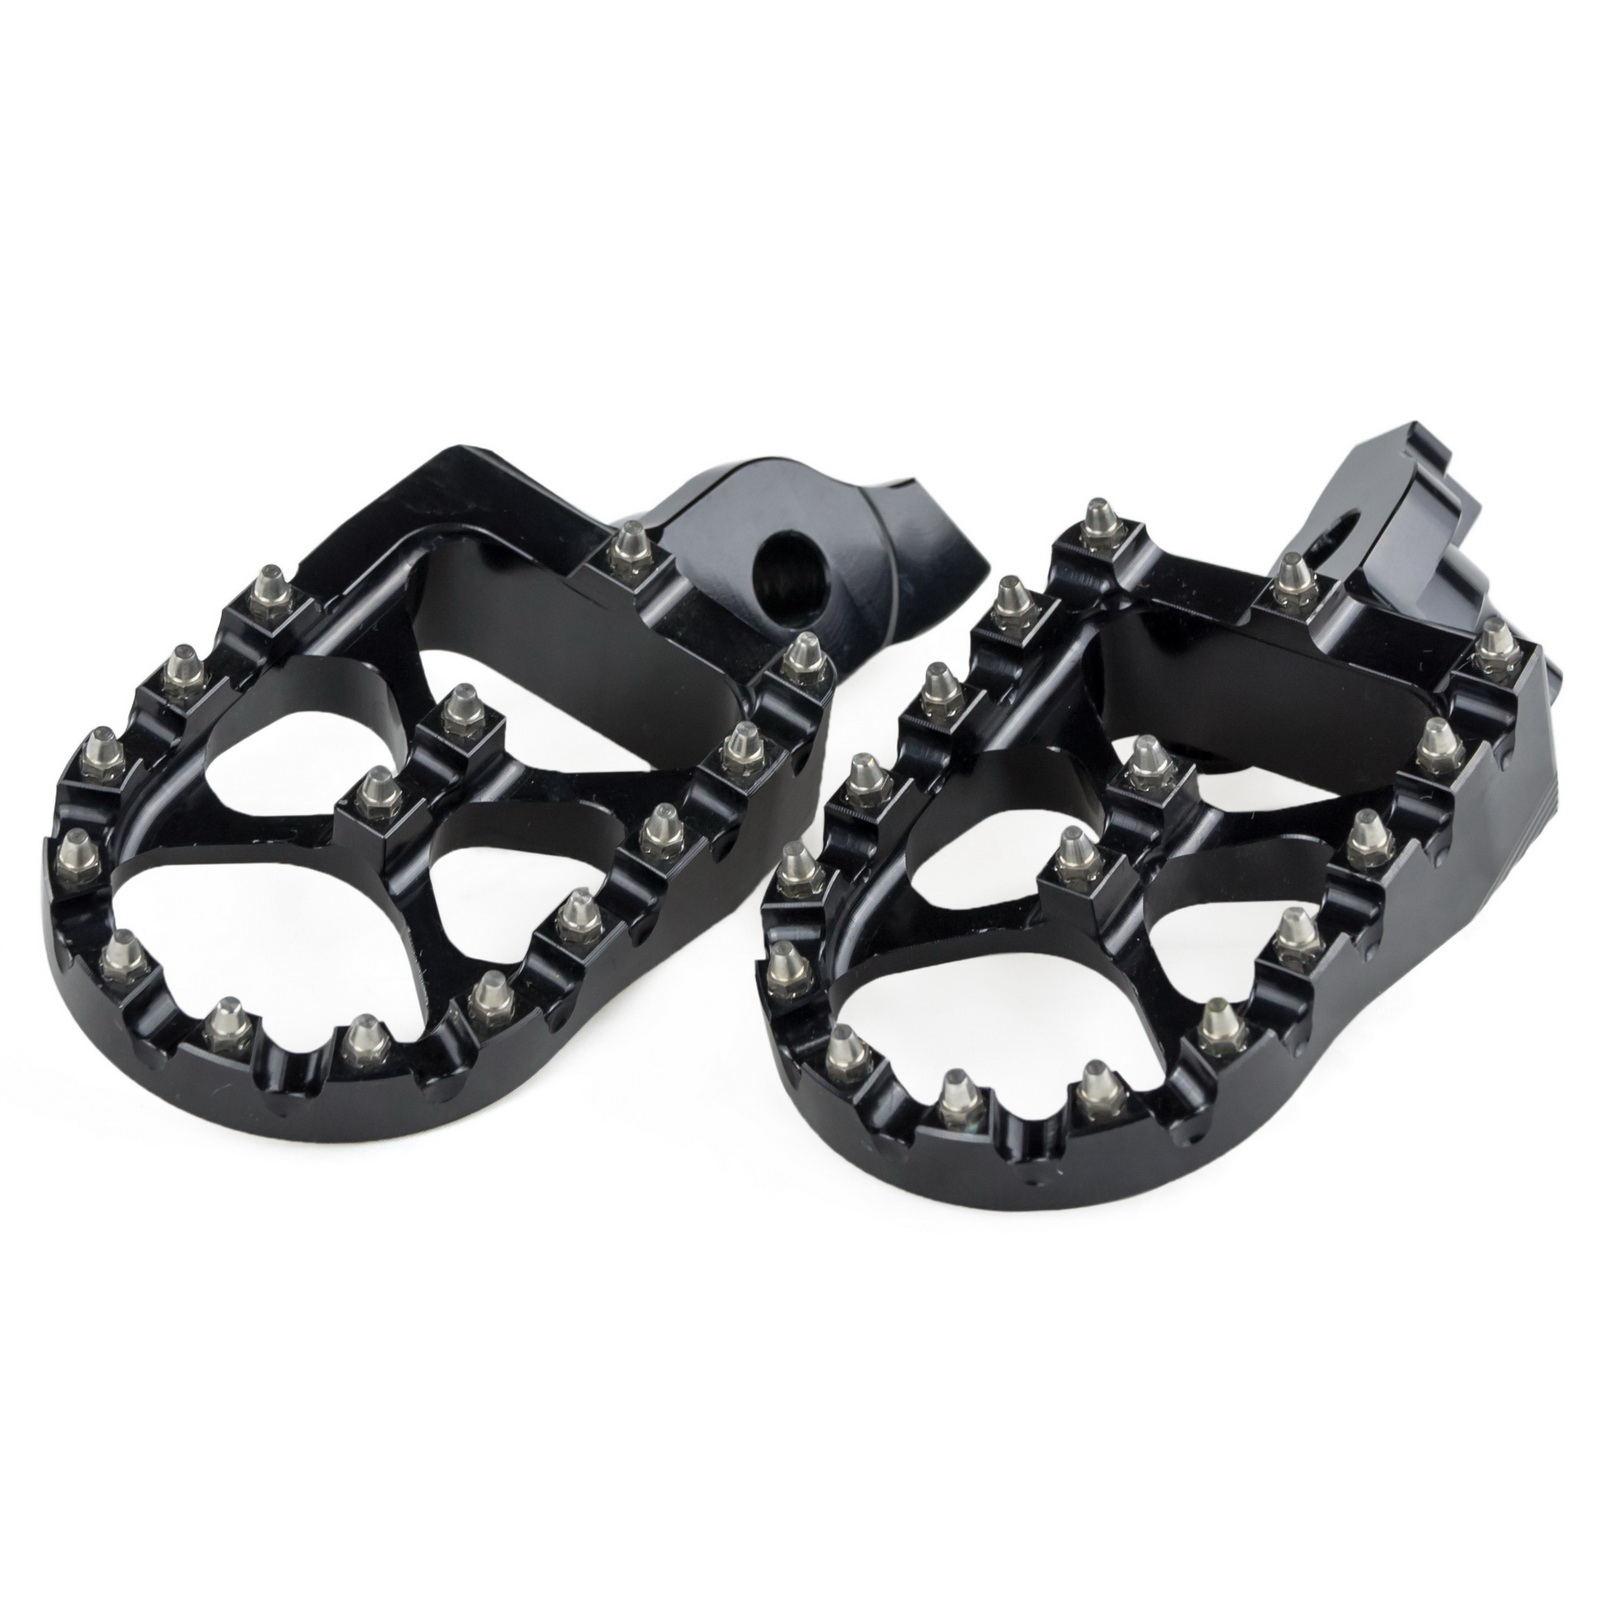 57mm MX Wide Foot Pegs Pedal Footrests Footpeg For Suzuki RMZ250 RM-Z250 2007 2008 2009 RMZ450 RM-Z450 2005 2006 2007